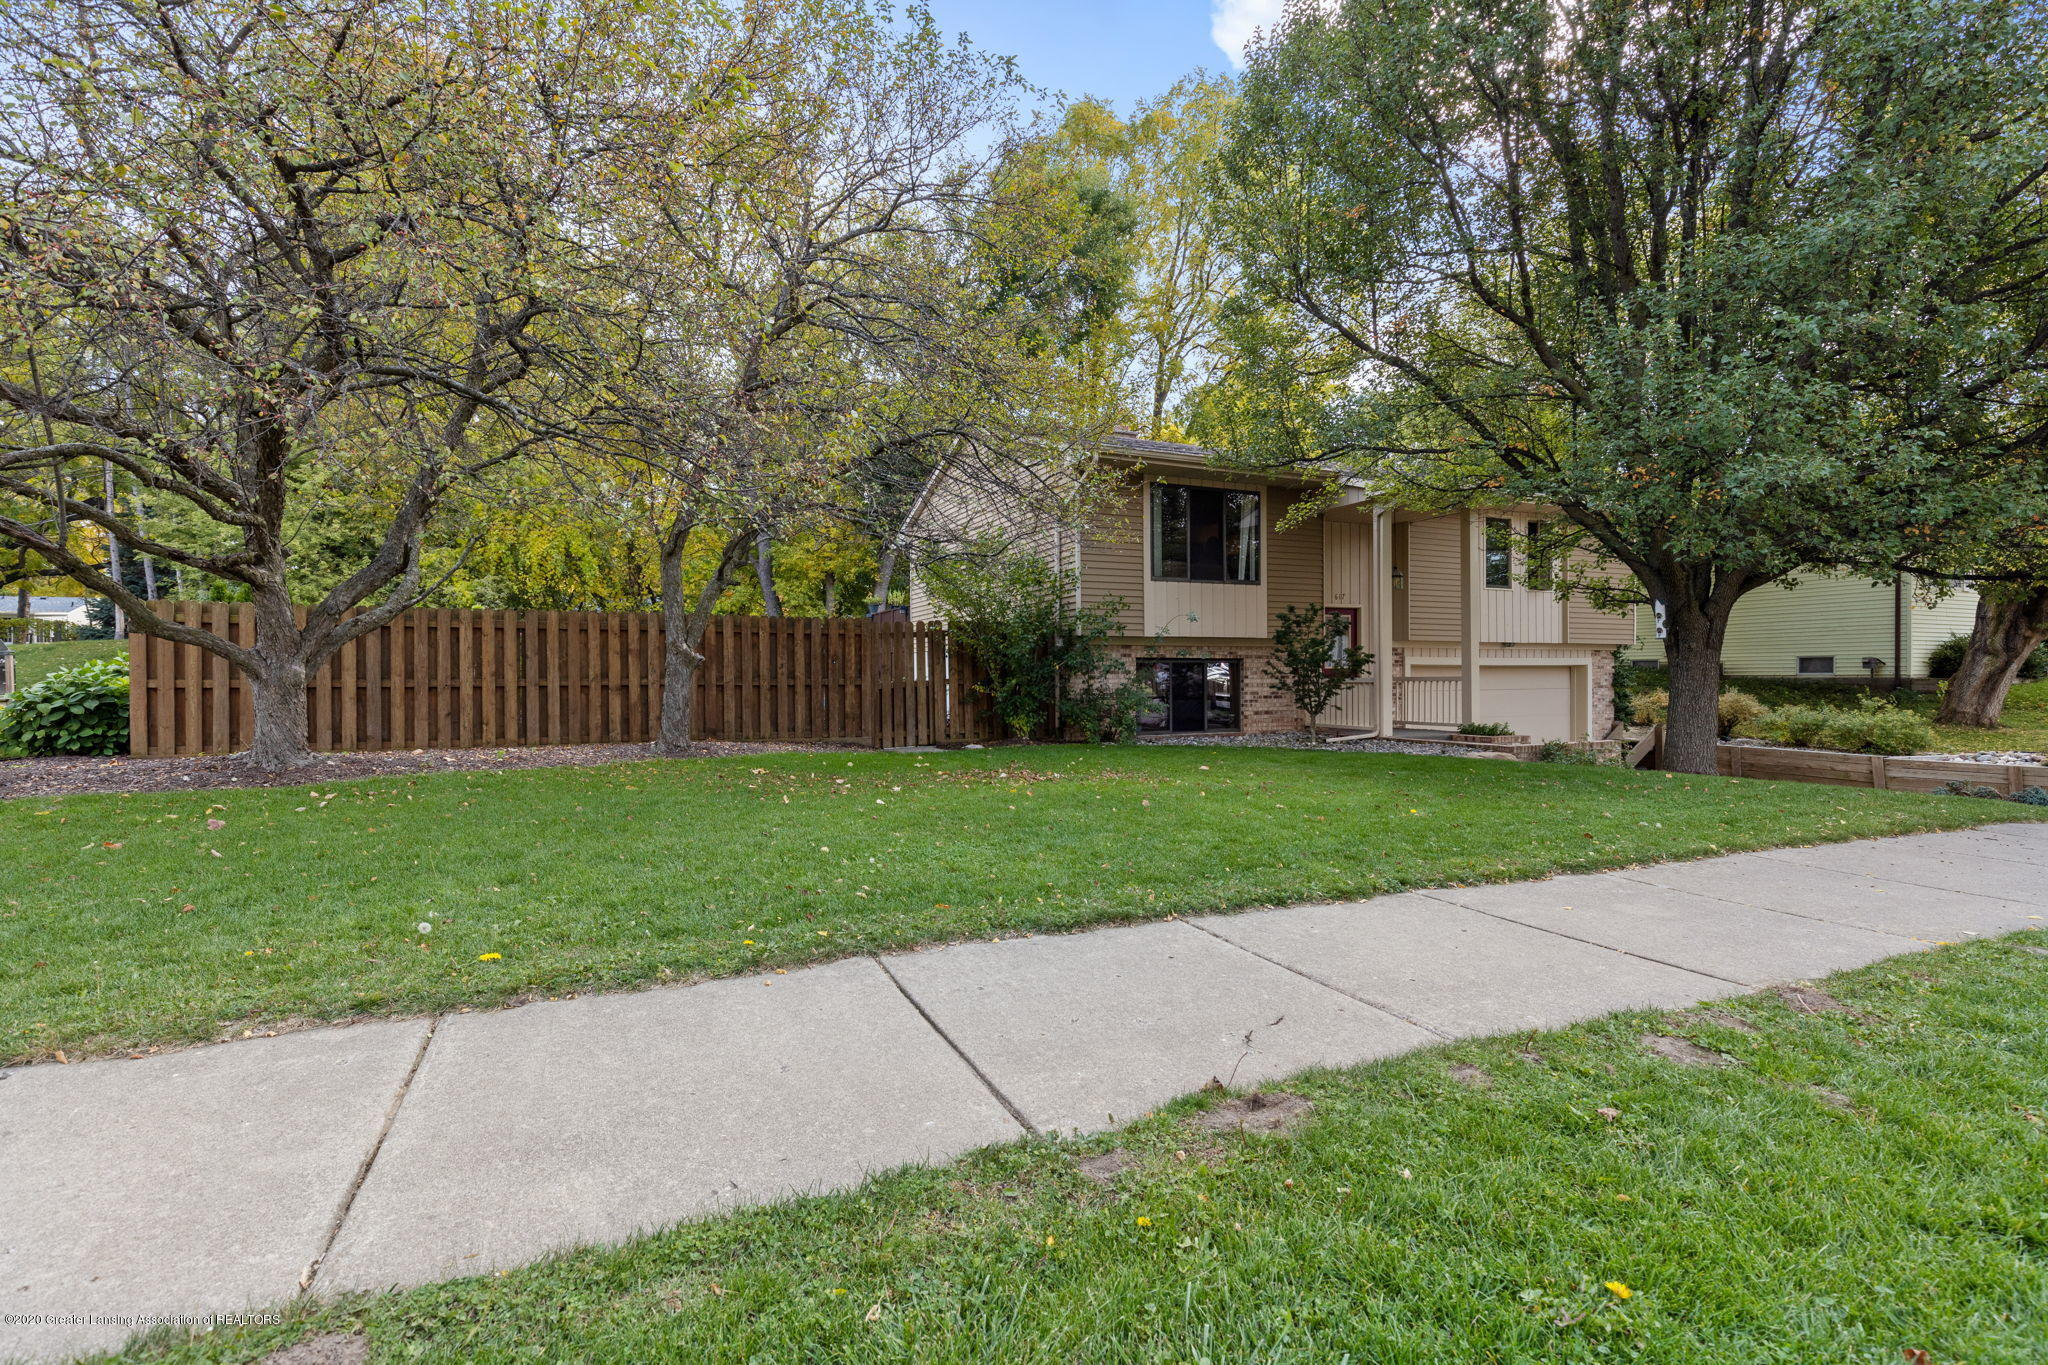 617 Green St - 4-web-or-mls-1P6A9410 - 4